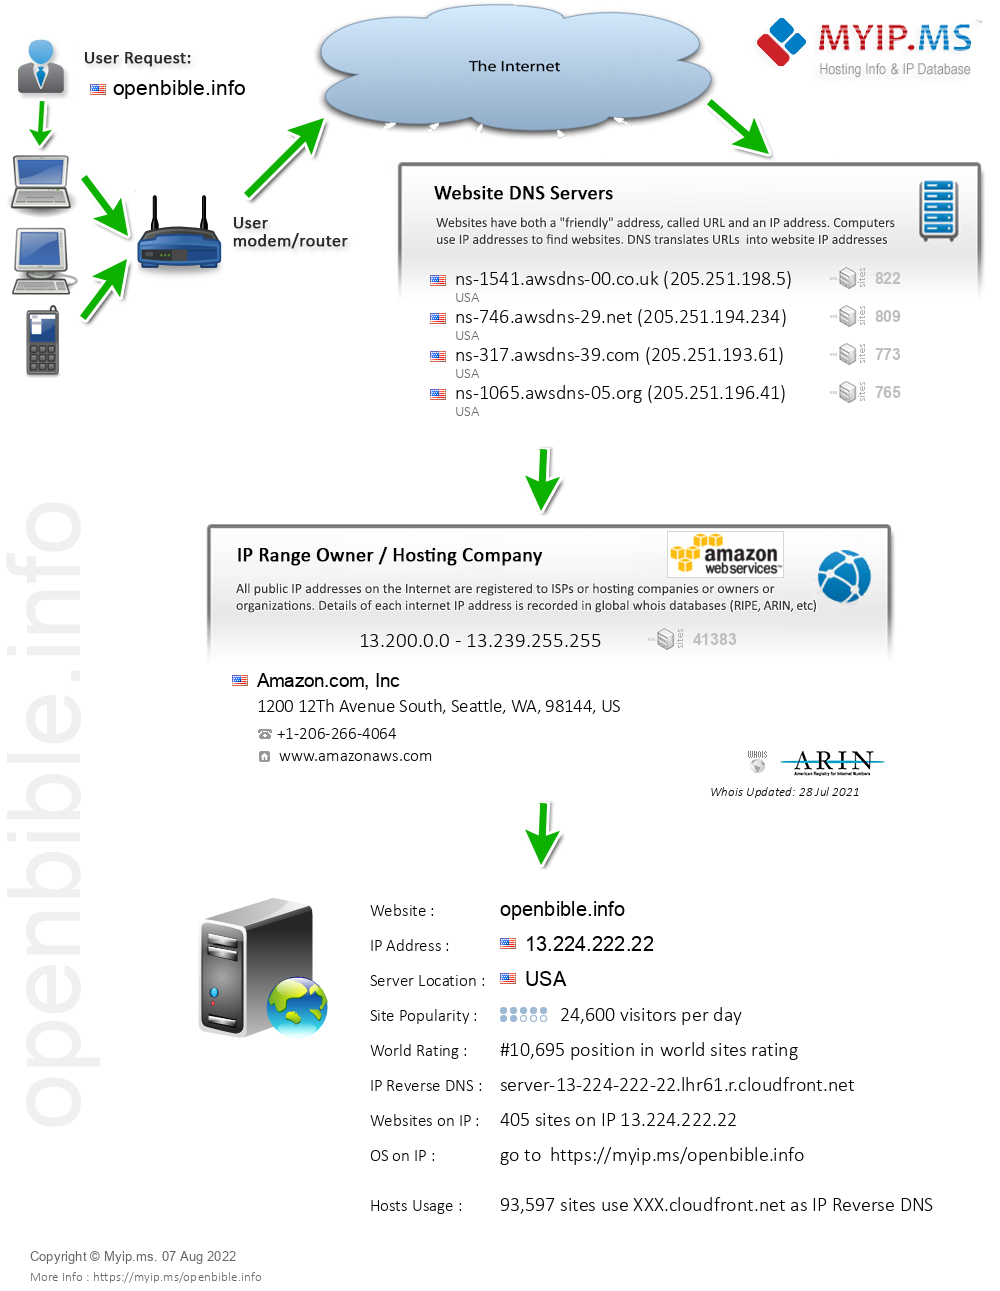 Openbible.info - Website Hosting Visual IP Diagram